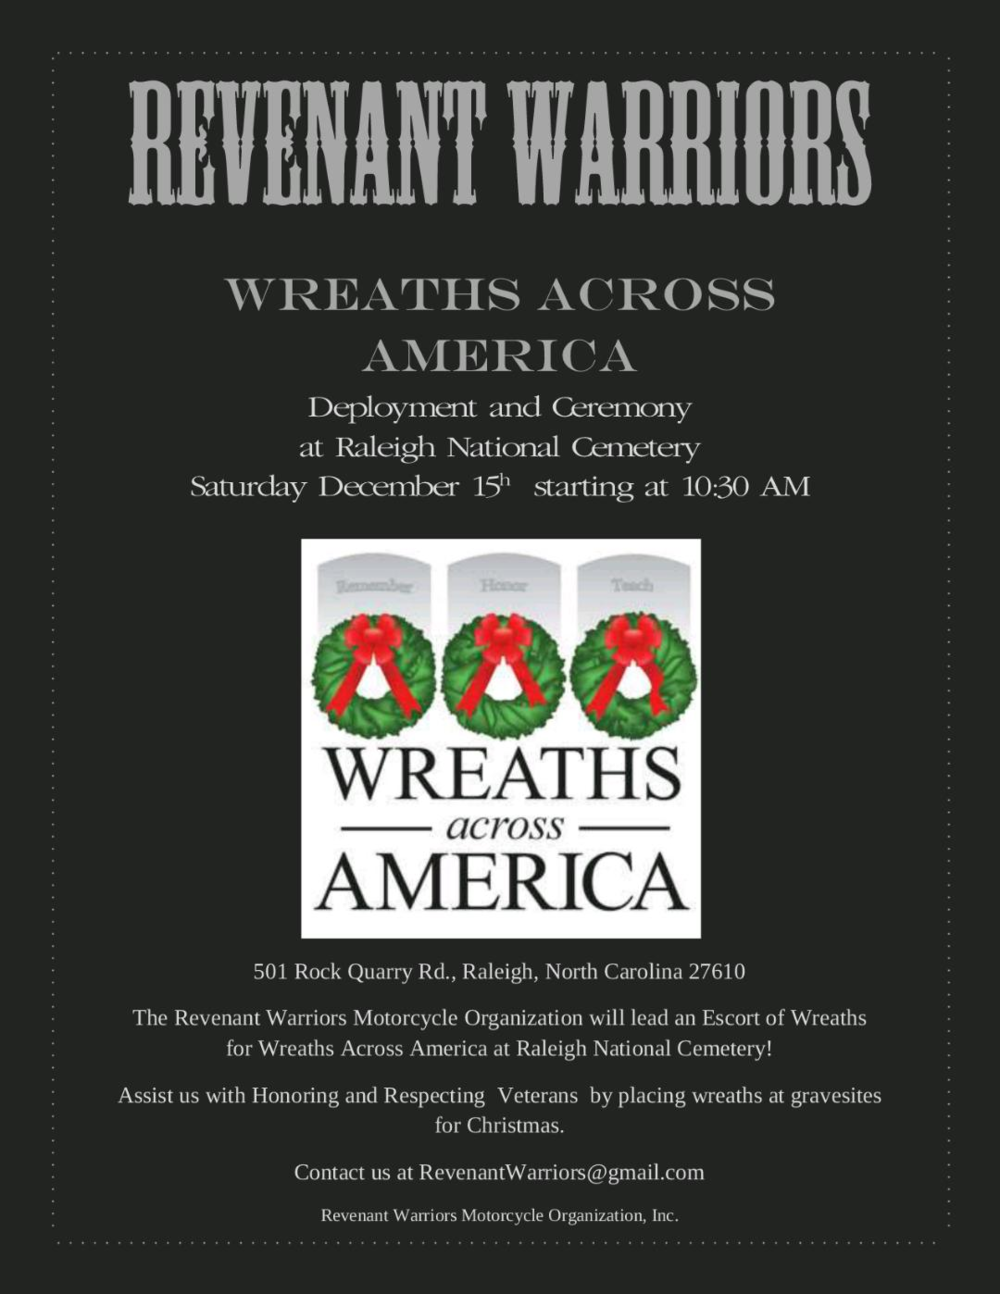 RWMO.Wreaths.2018.11.png